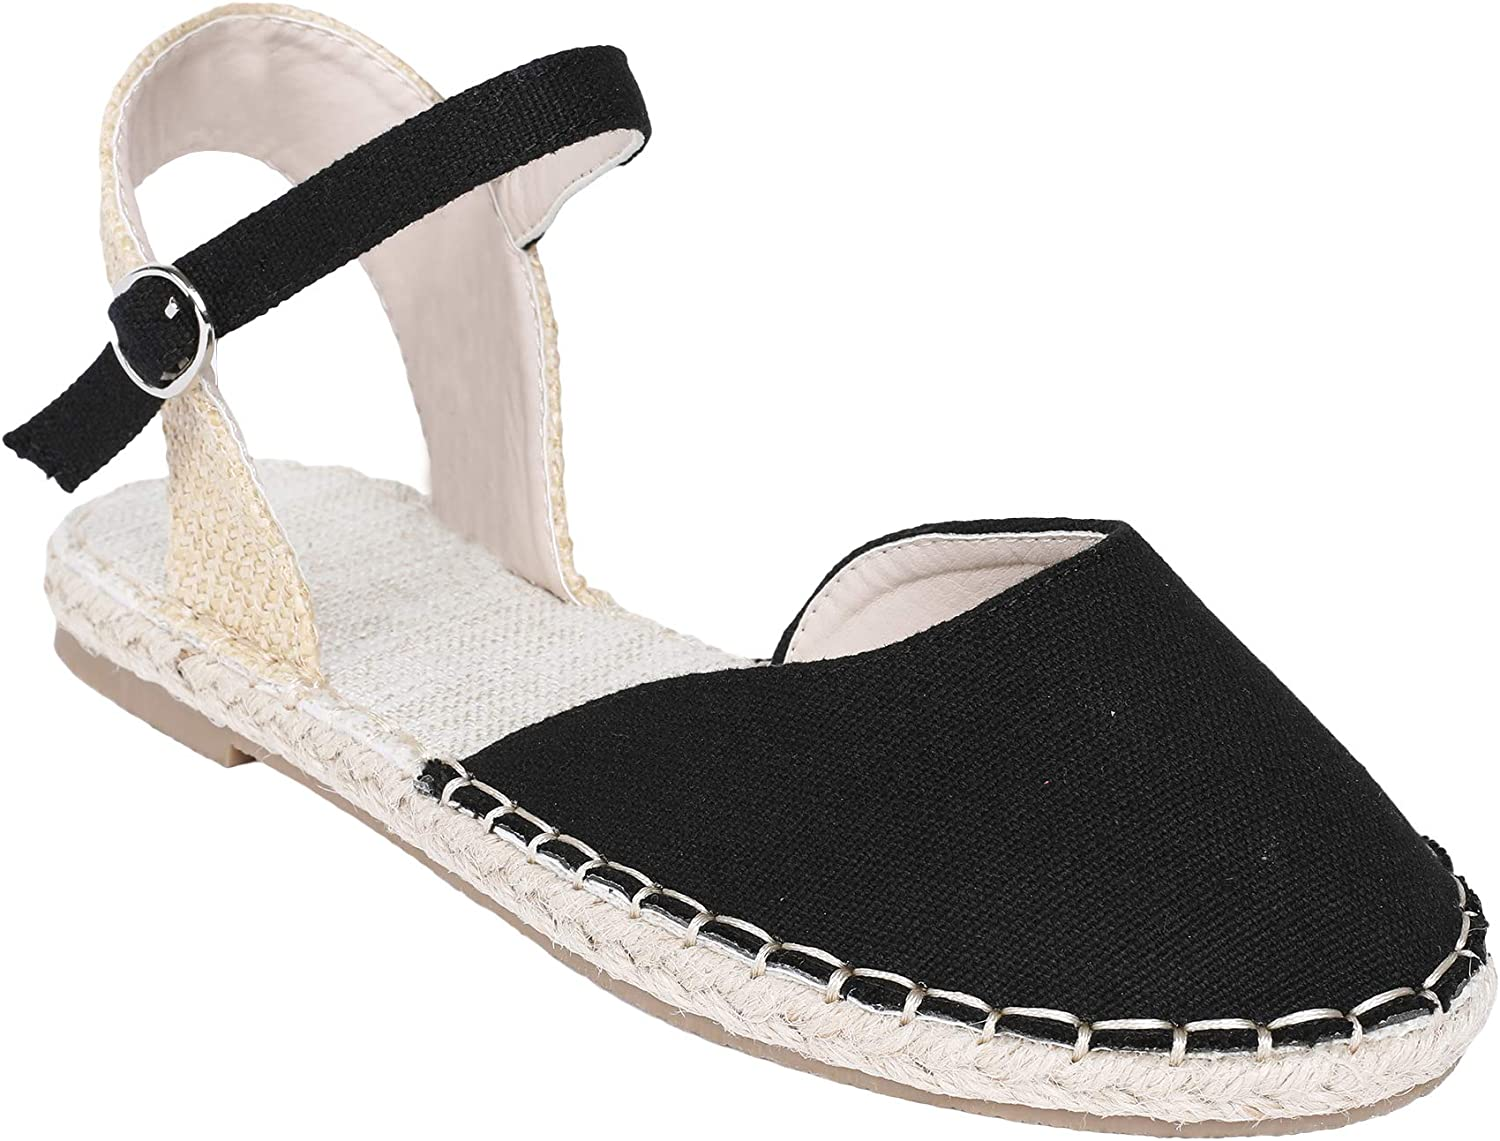 Ermonn Womens Espadrille Flat Sandals Closed Toe Ankle Strap Buckle D'Orsay Flat Shoes Black